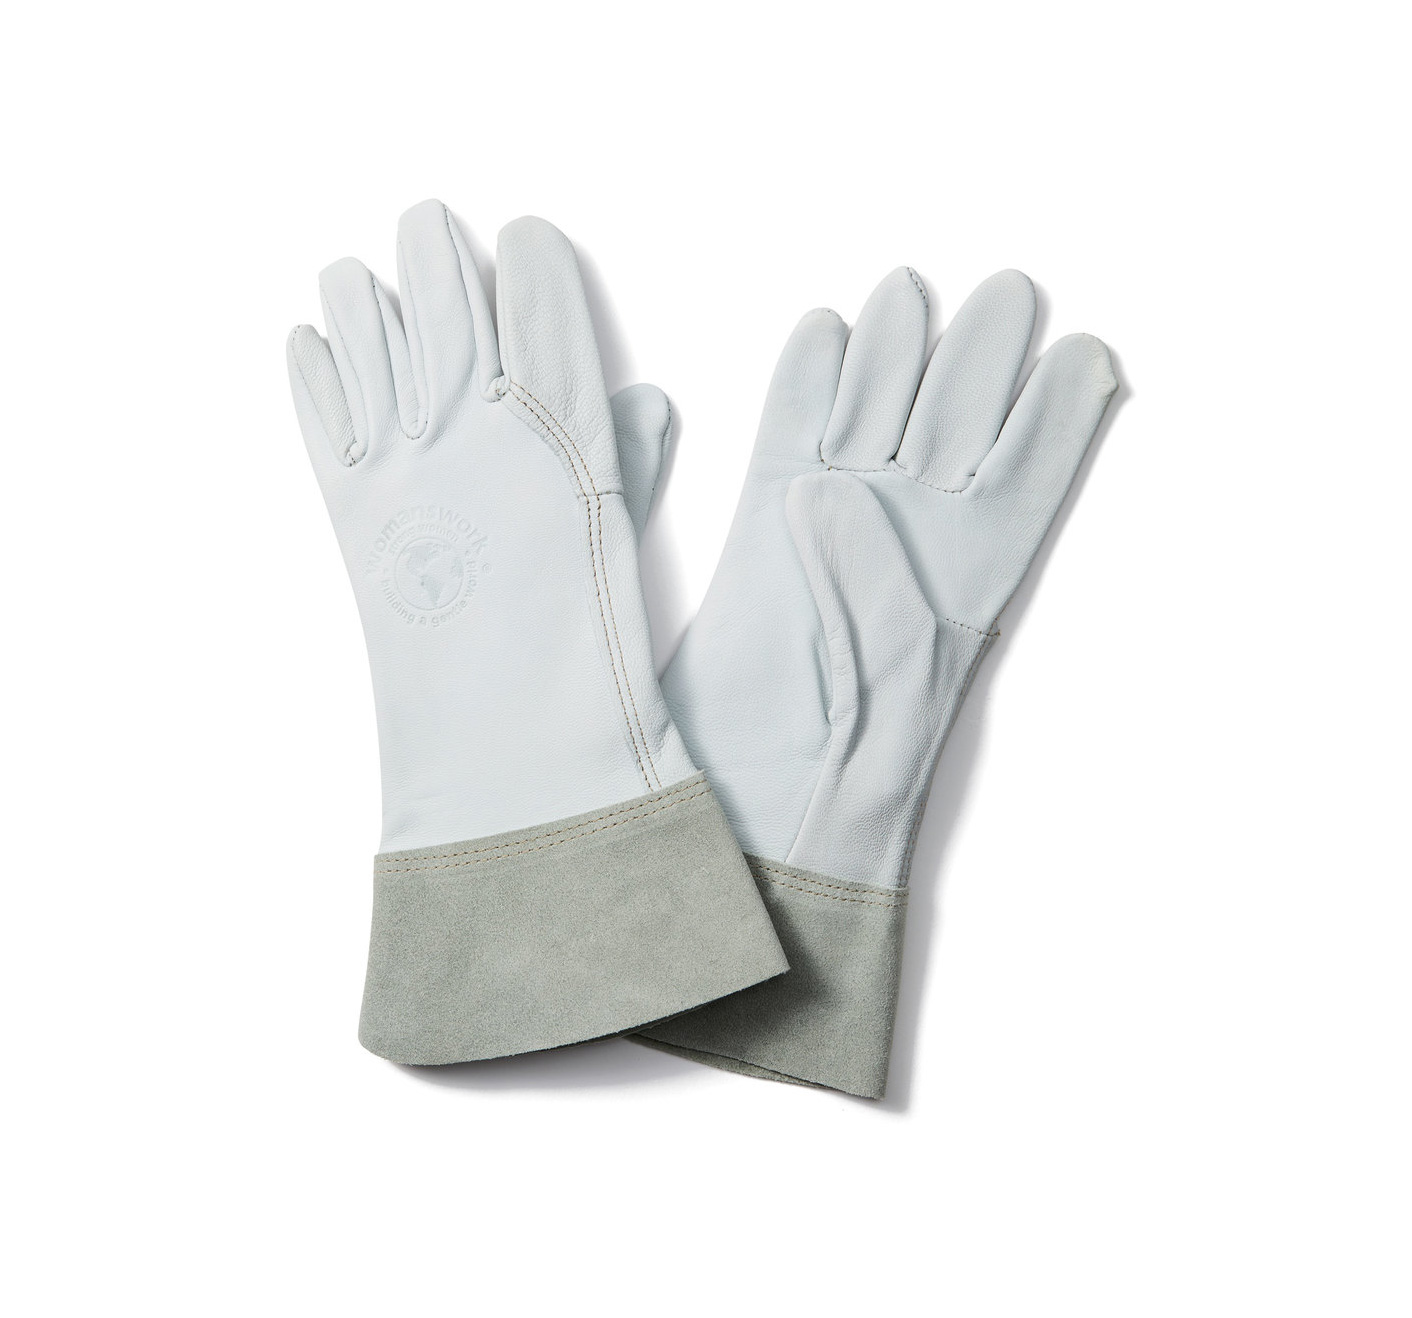 Women's Gardeners Gloves